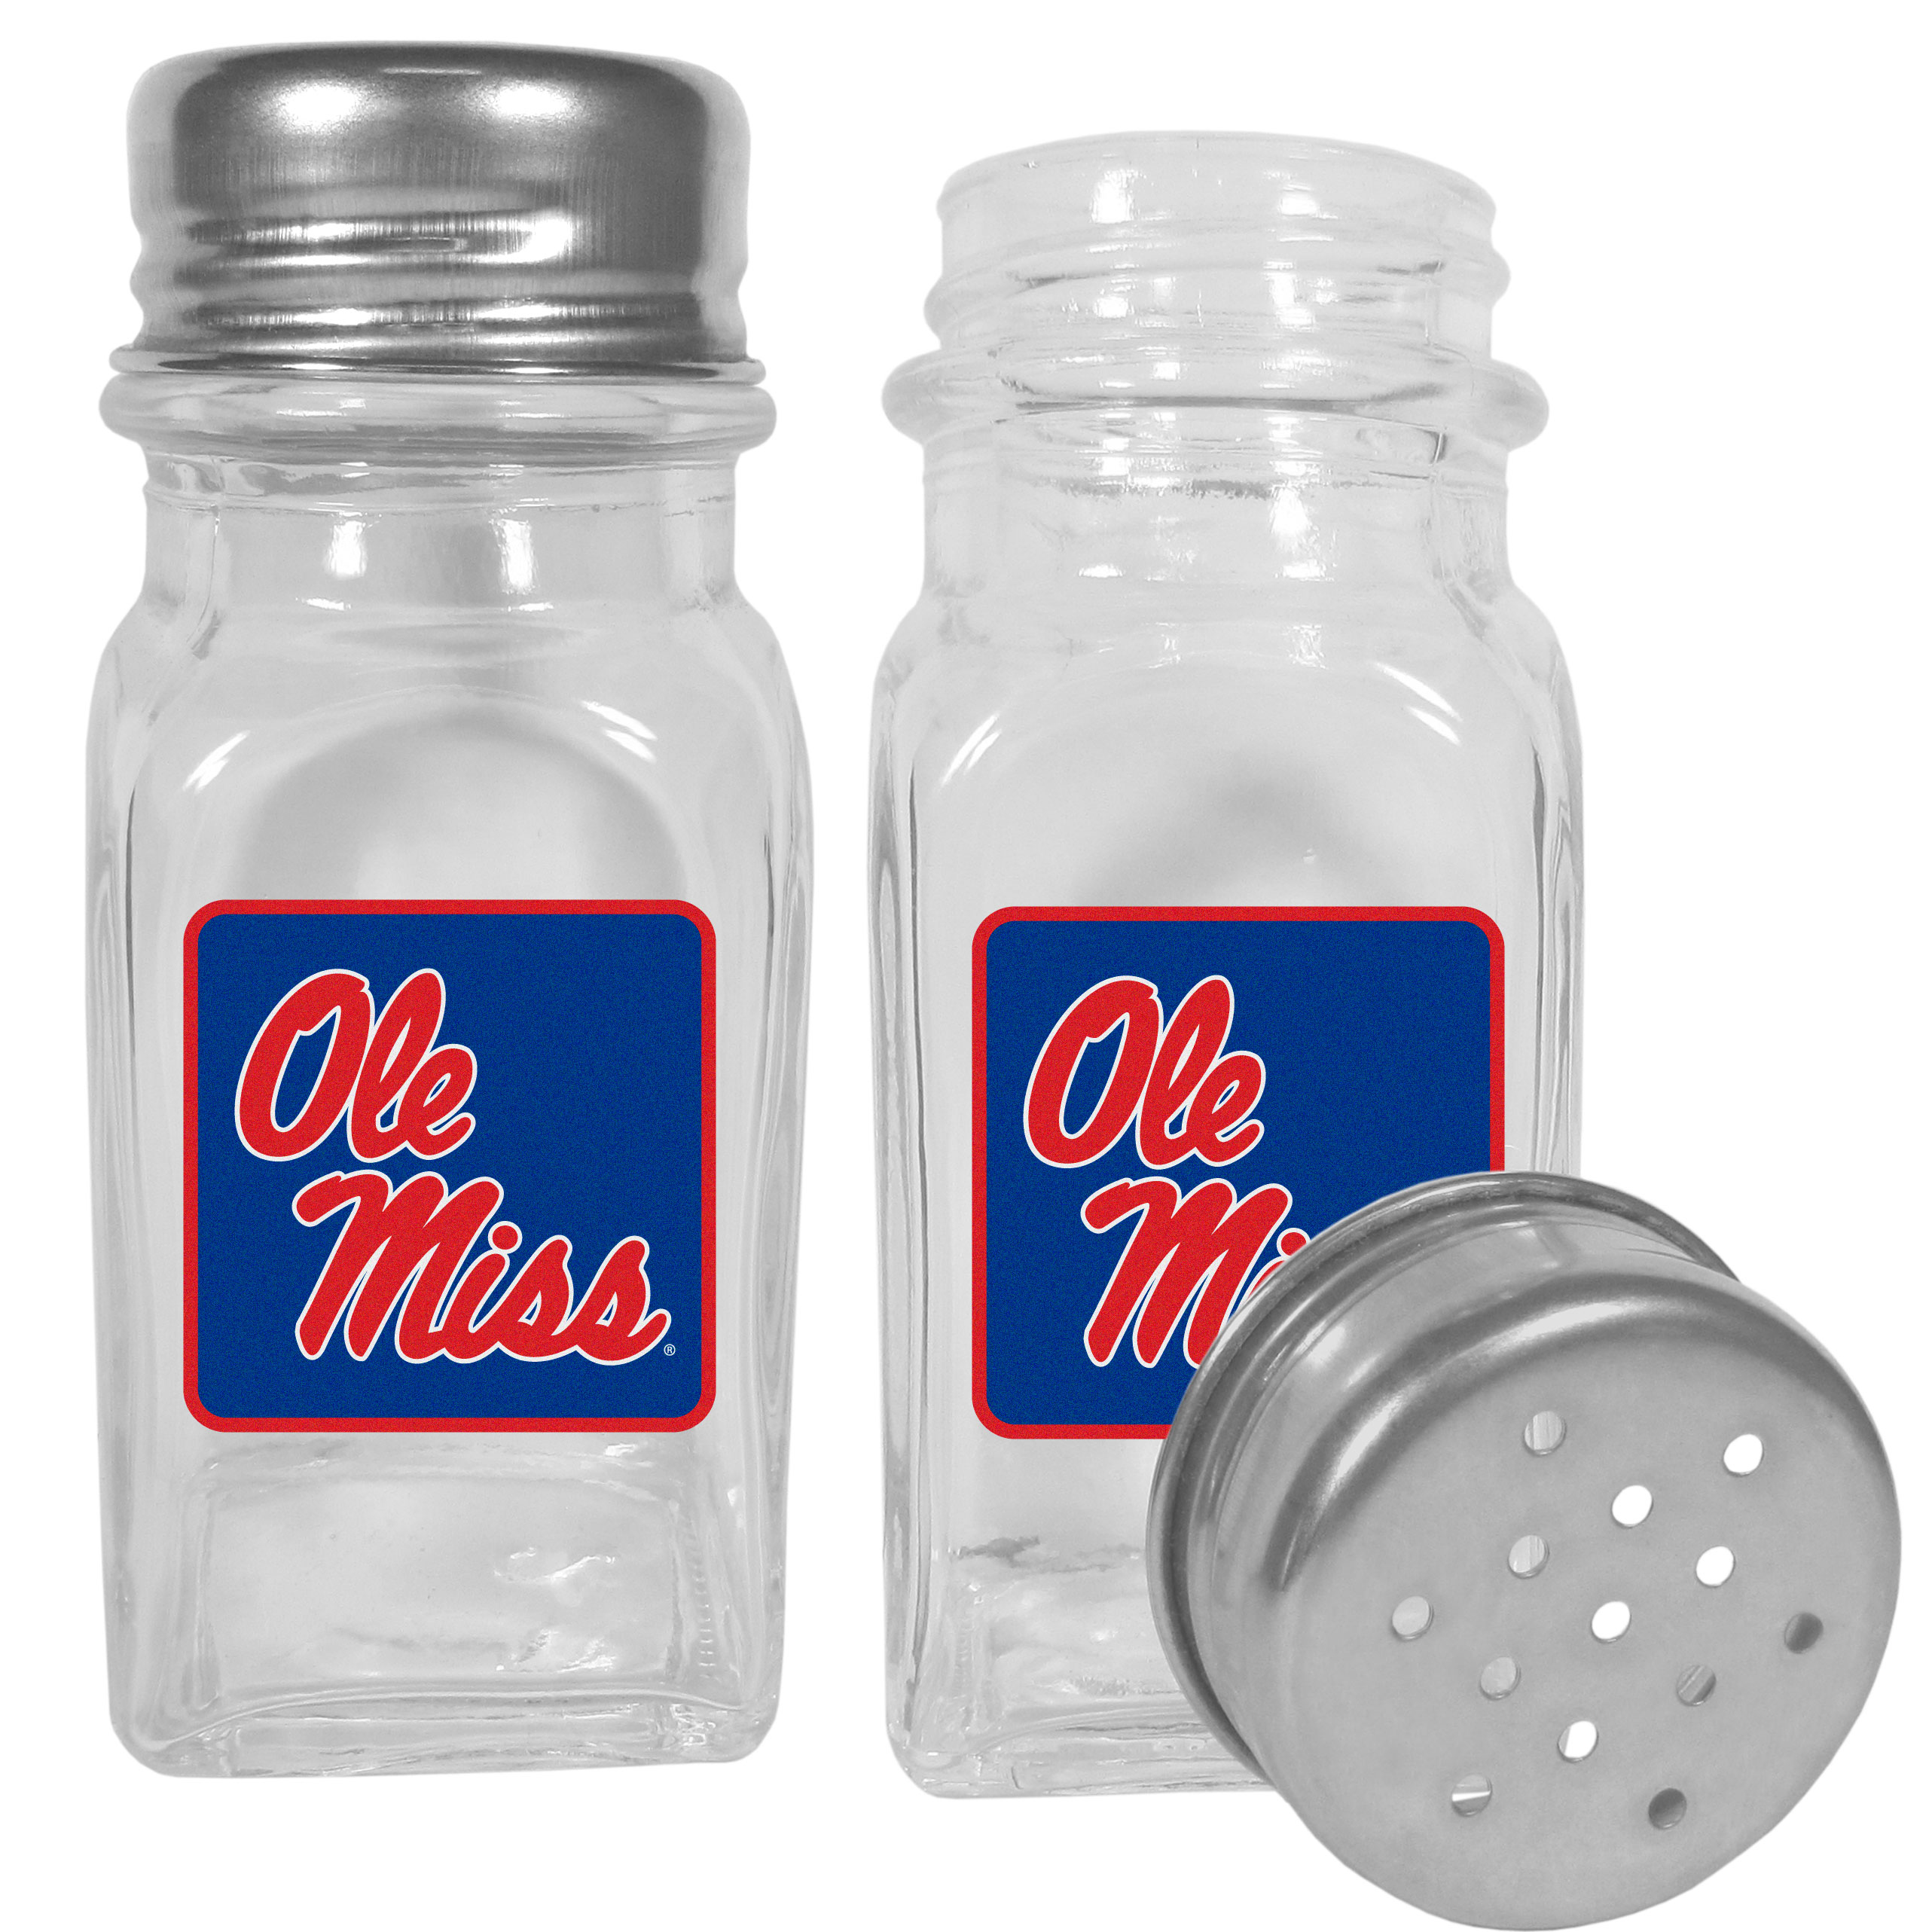 Mississippi Rebels Graphics Salt and Pepper Shaker - No tailgate party is complete without your Mississippi Rebels salt & pepper shakers featuring bright team logos. The diner replica salt and pepper shakers are glass with screw top lids. These team shakers are a great grill accessory whether you are barbecuing on the patio, picnicing or having a game day party.